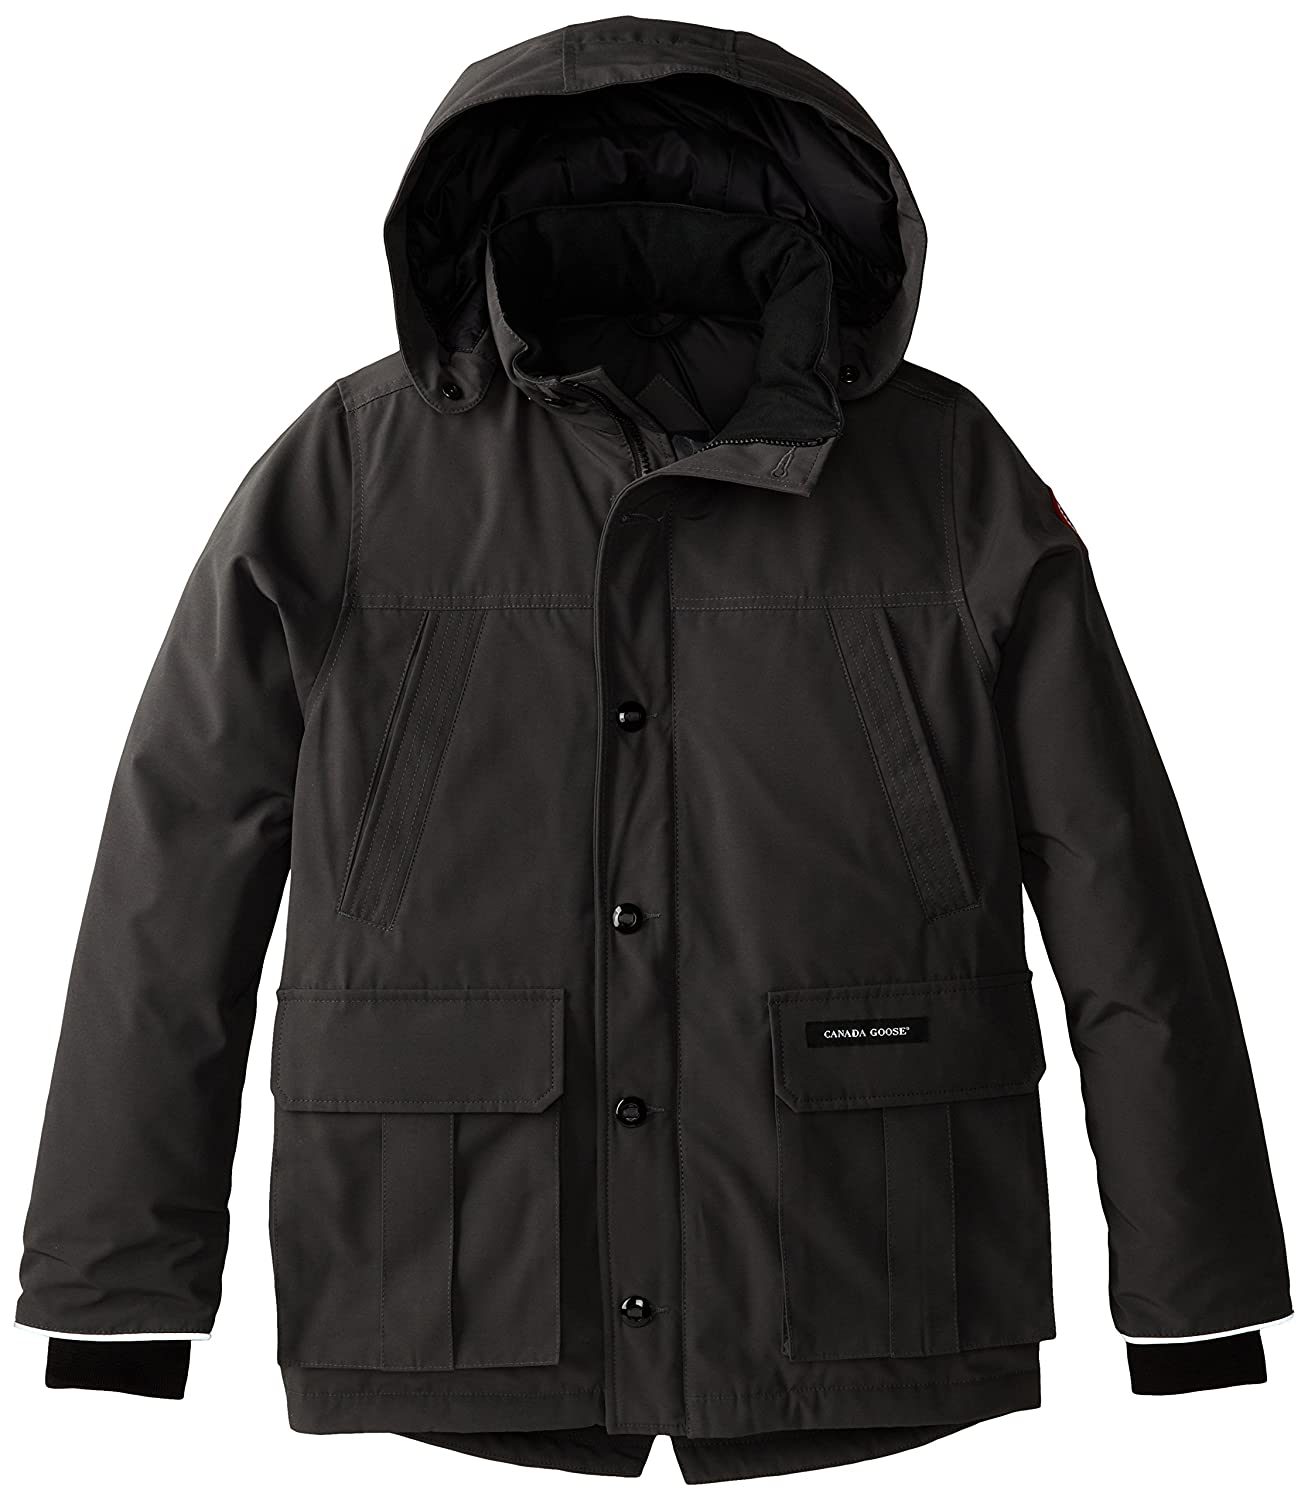 Amazon.com : Canada Goose Boys Vernon Parka : Athletic Outerwear ...